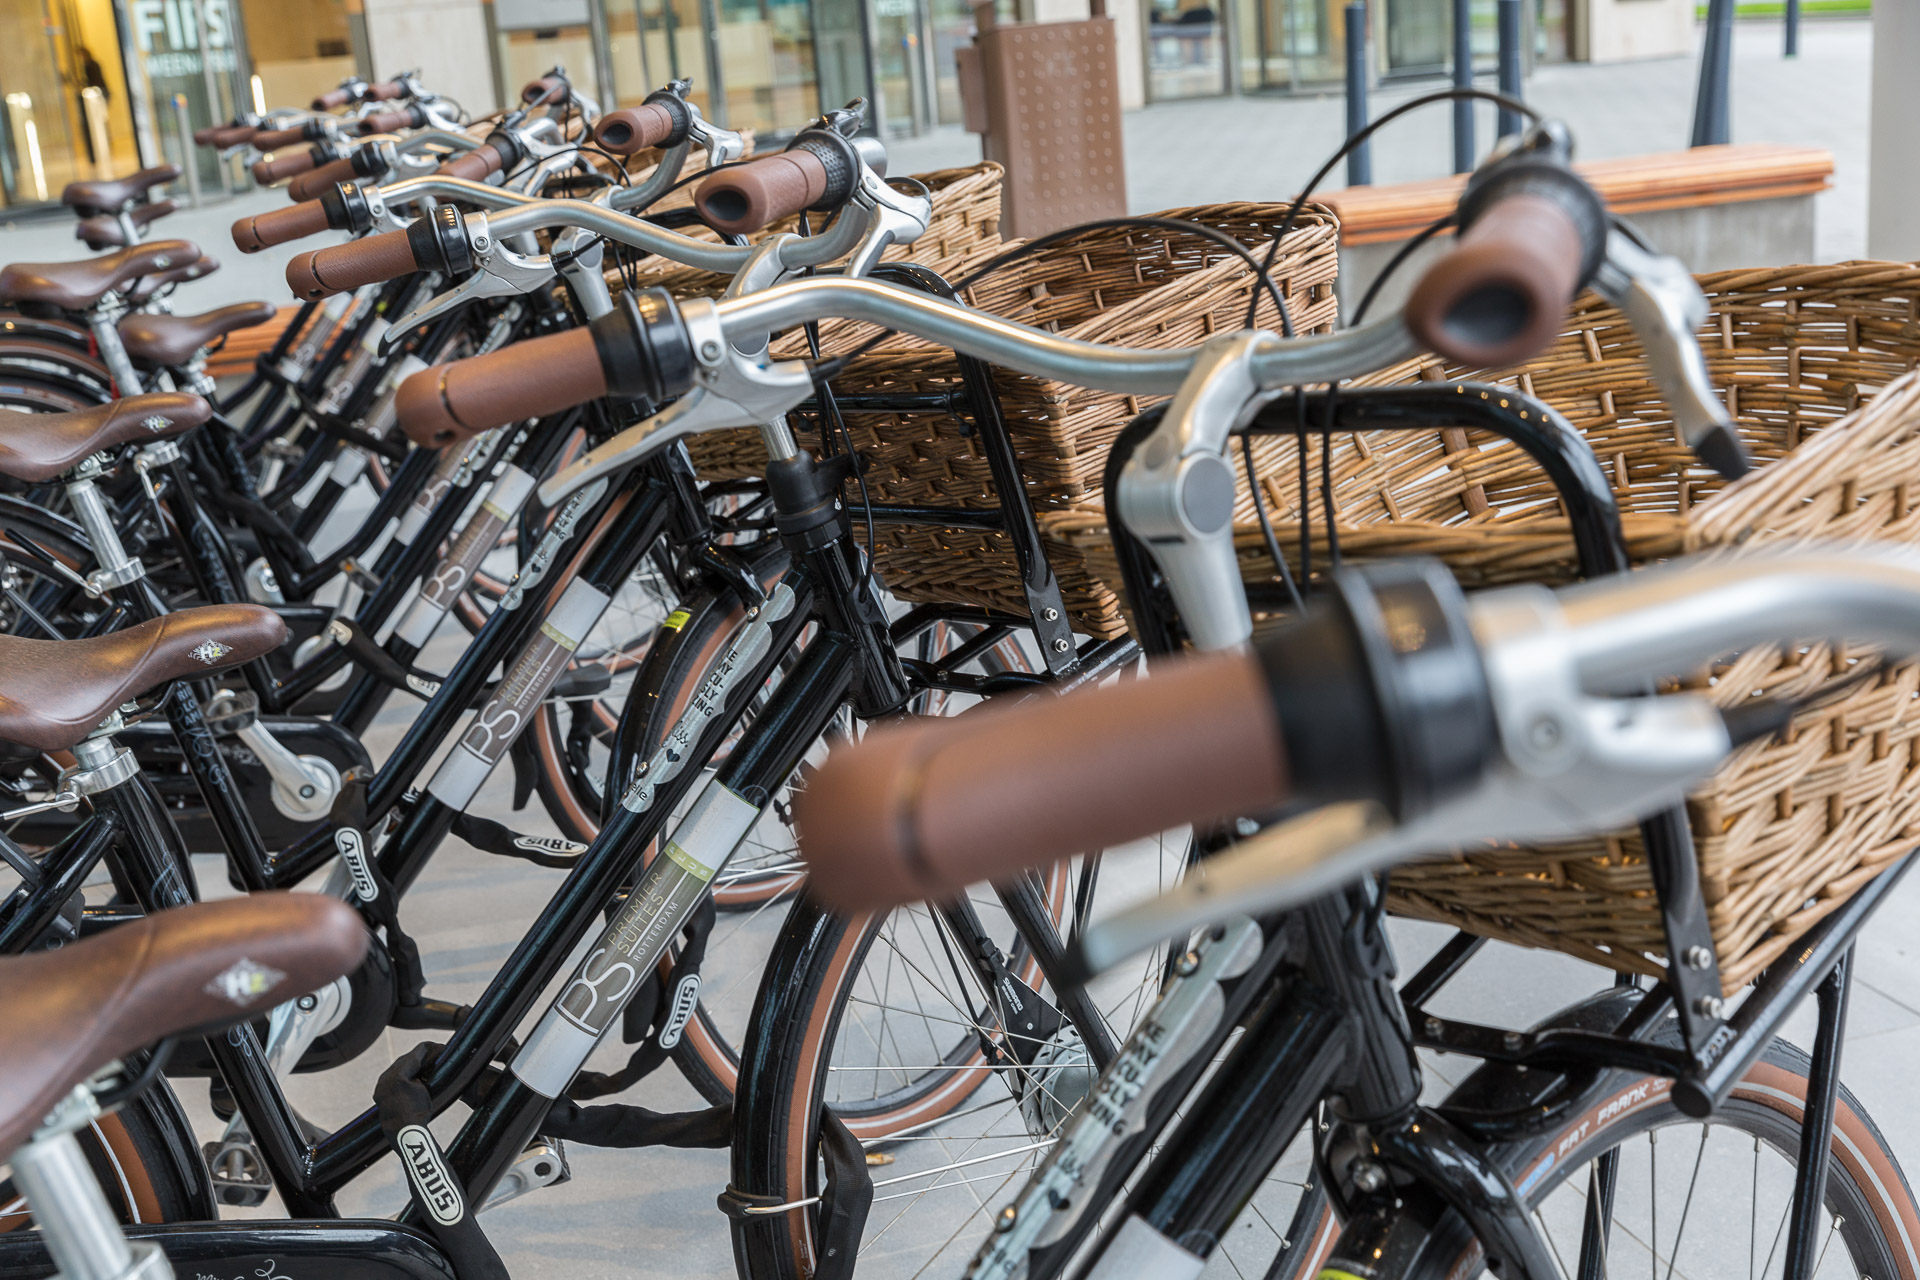 Bikes for rent at PREMIER SUITES PLUS Rotterdam